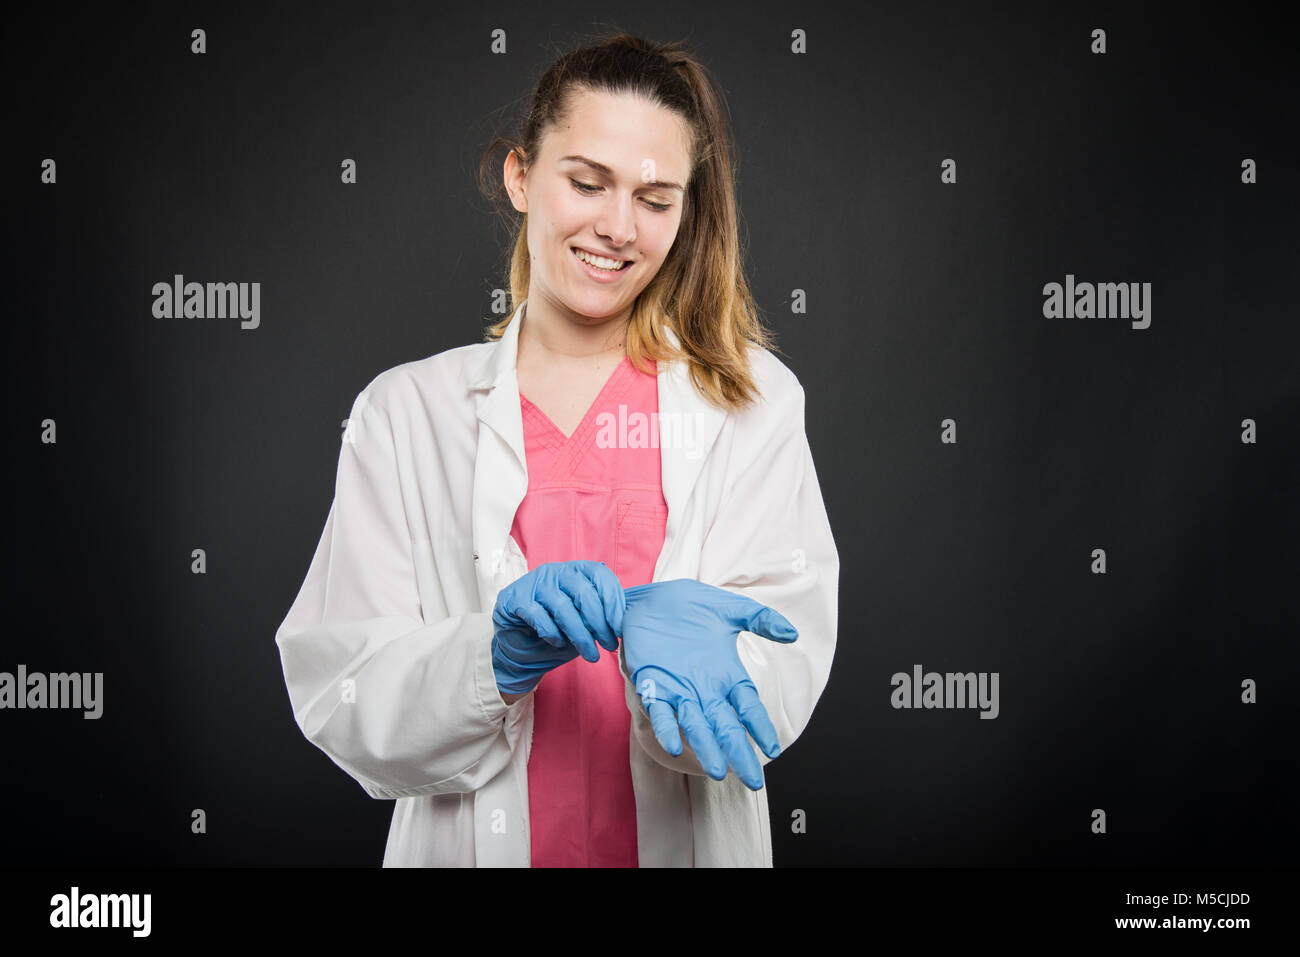 Young female doctor portrait taking her sterile gloves on black background with copyspace advertising area - Stock Image